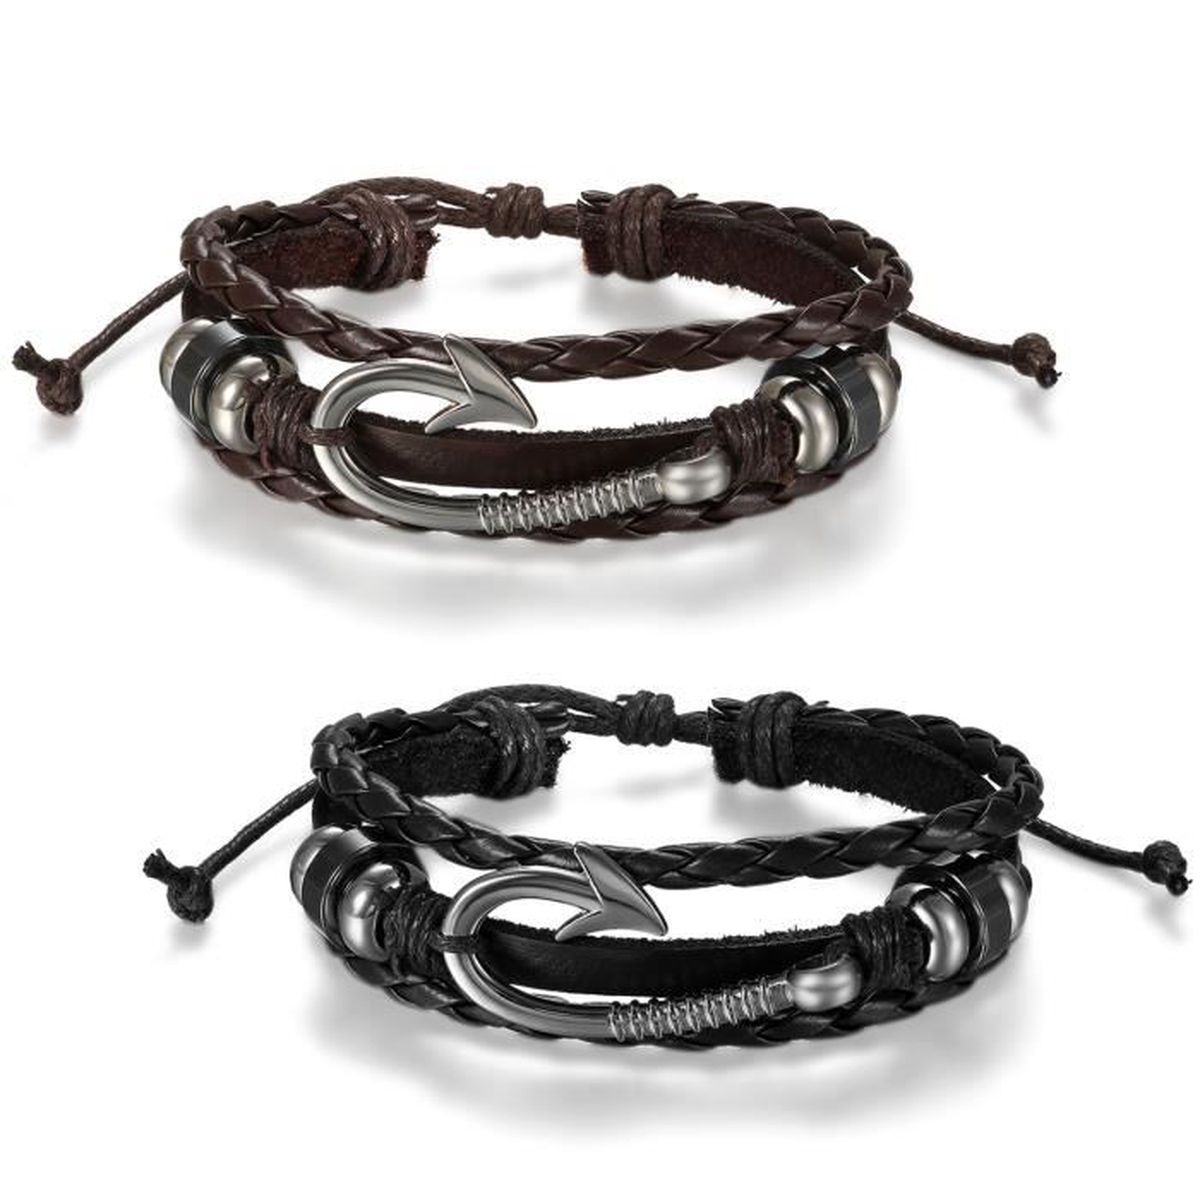 jewelrywe bijoux bracelet homme femme artisanal crochet hame on perle manchette r glable cuir. Black Bedroom Furniture Sets. Home Design Ideas